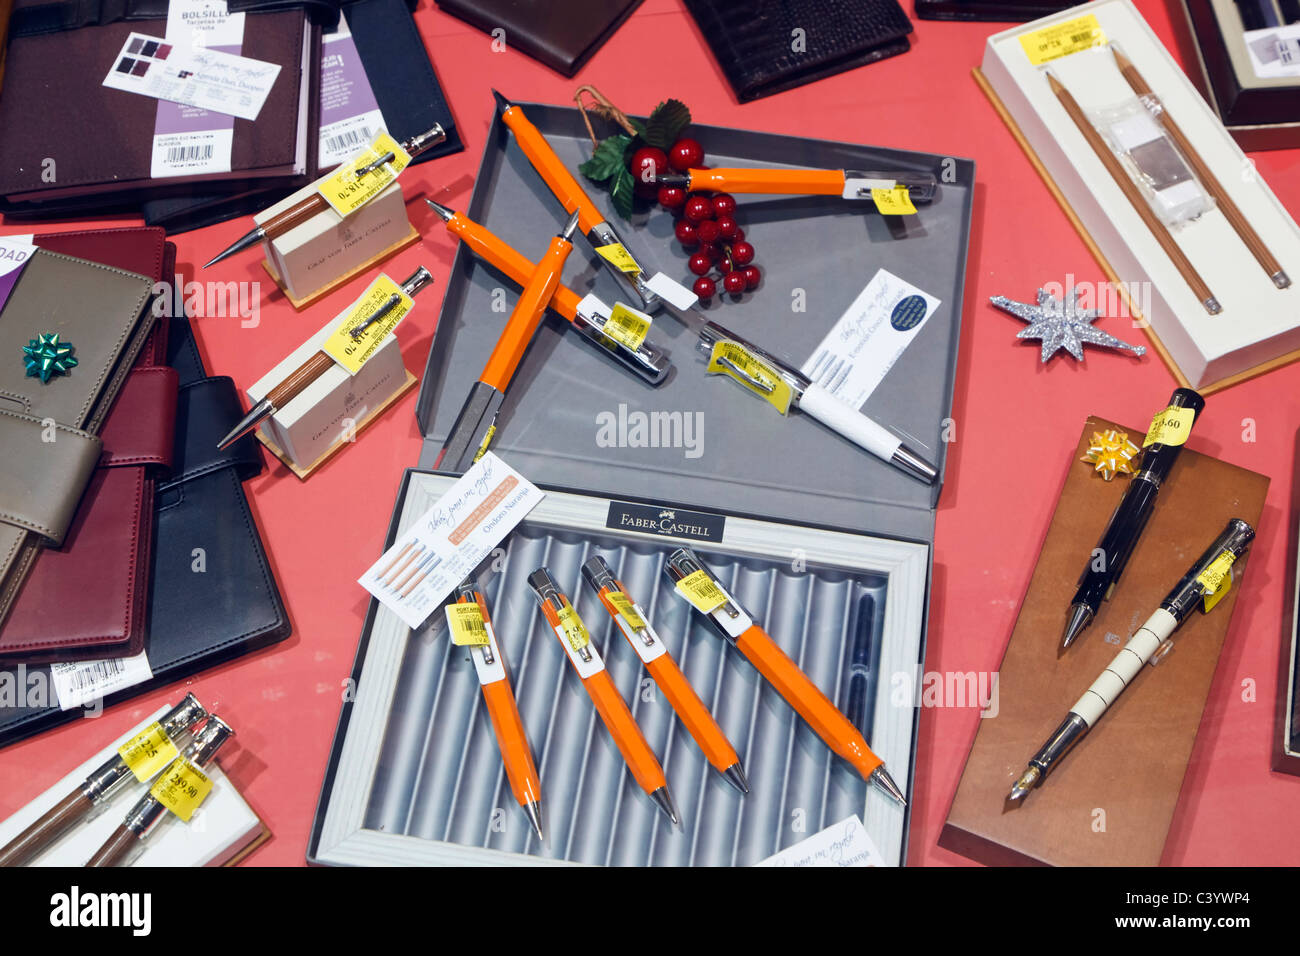 High quality pens and retractable pencils in stationary shop window - Stock Image